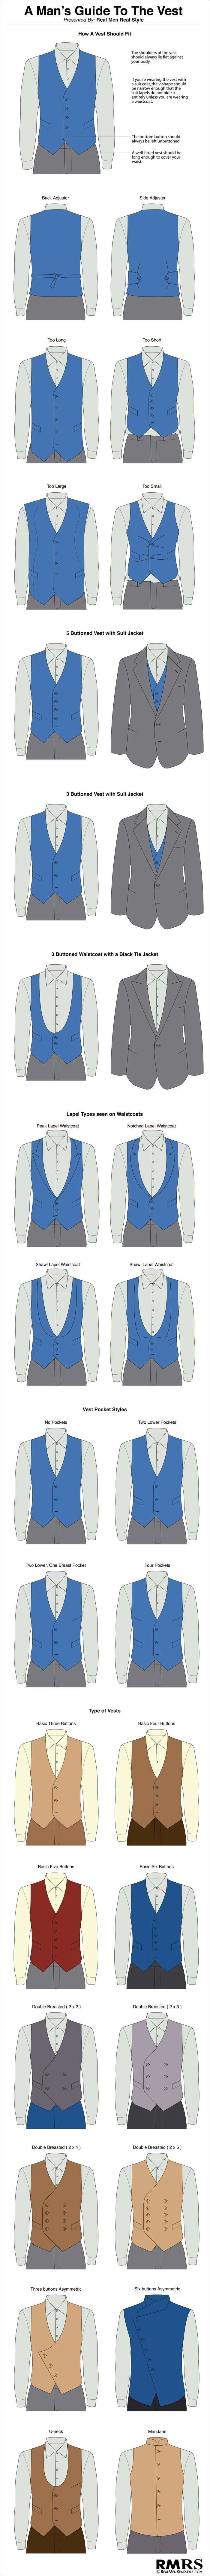 how a vest should fit, men's guide to vest http://www.99wtf.net/young-style/urban-style/mens-denim-shirt-urban-fashion-2016/